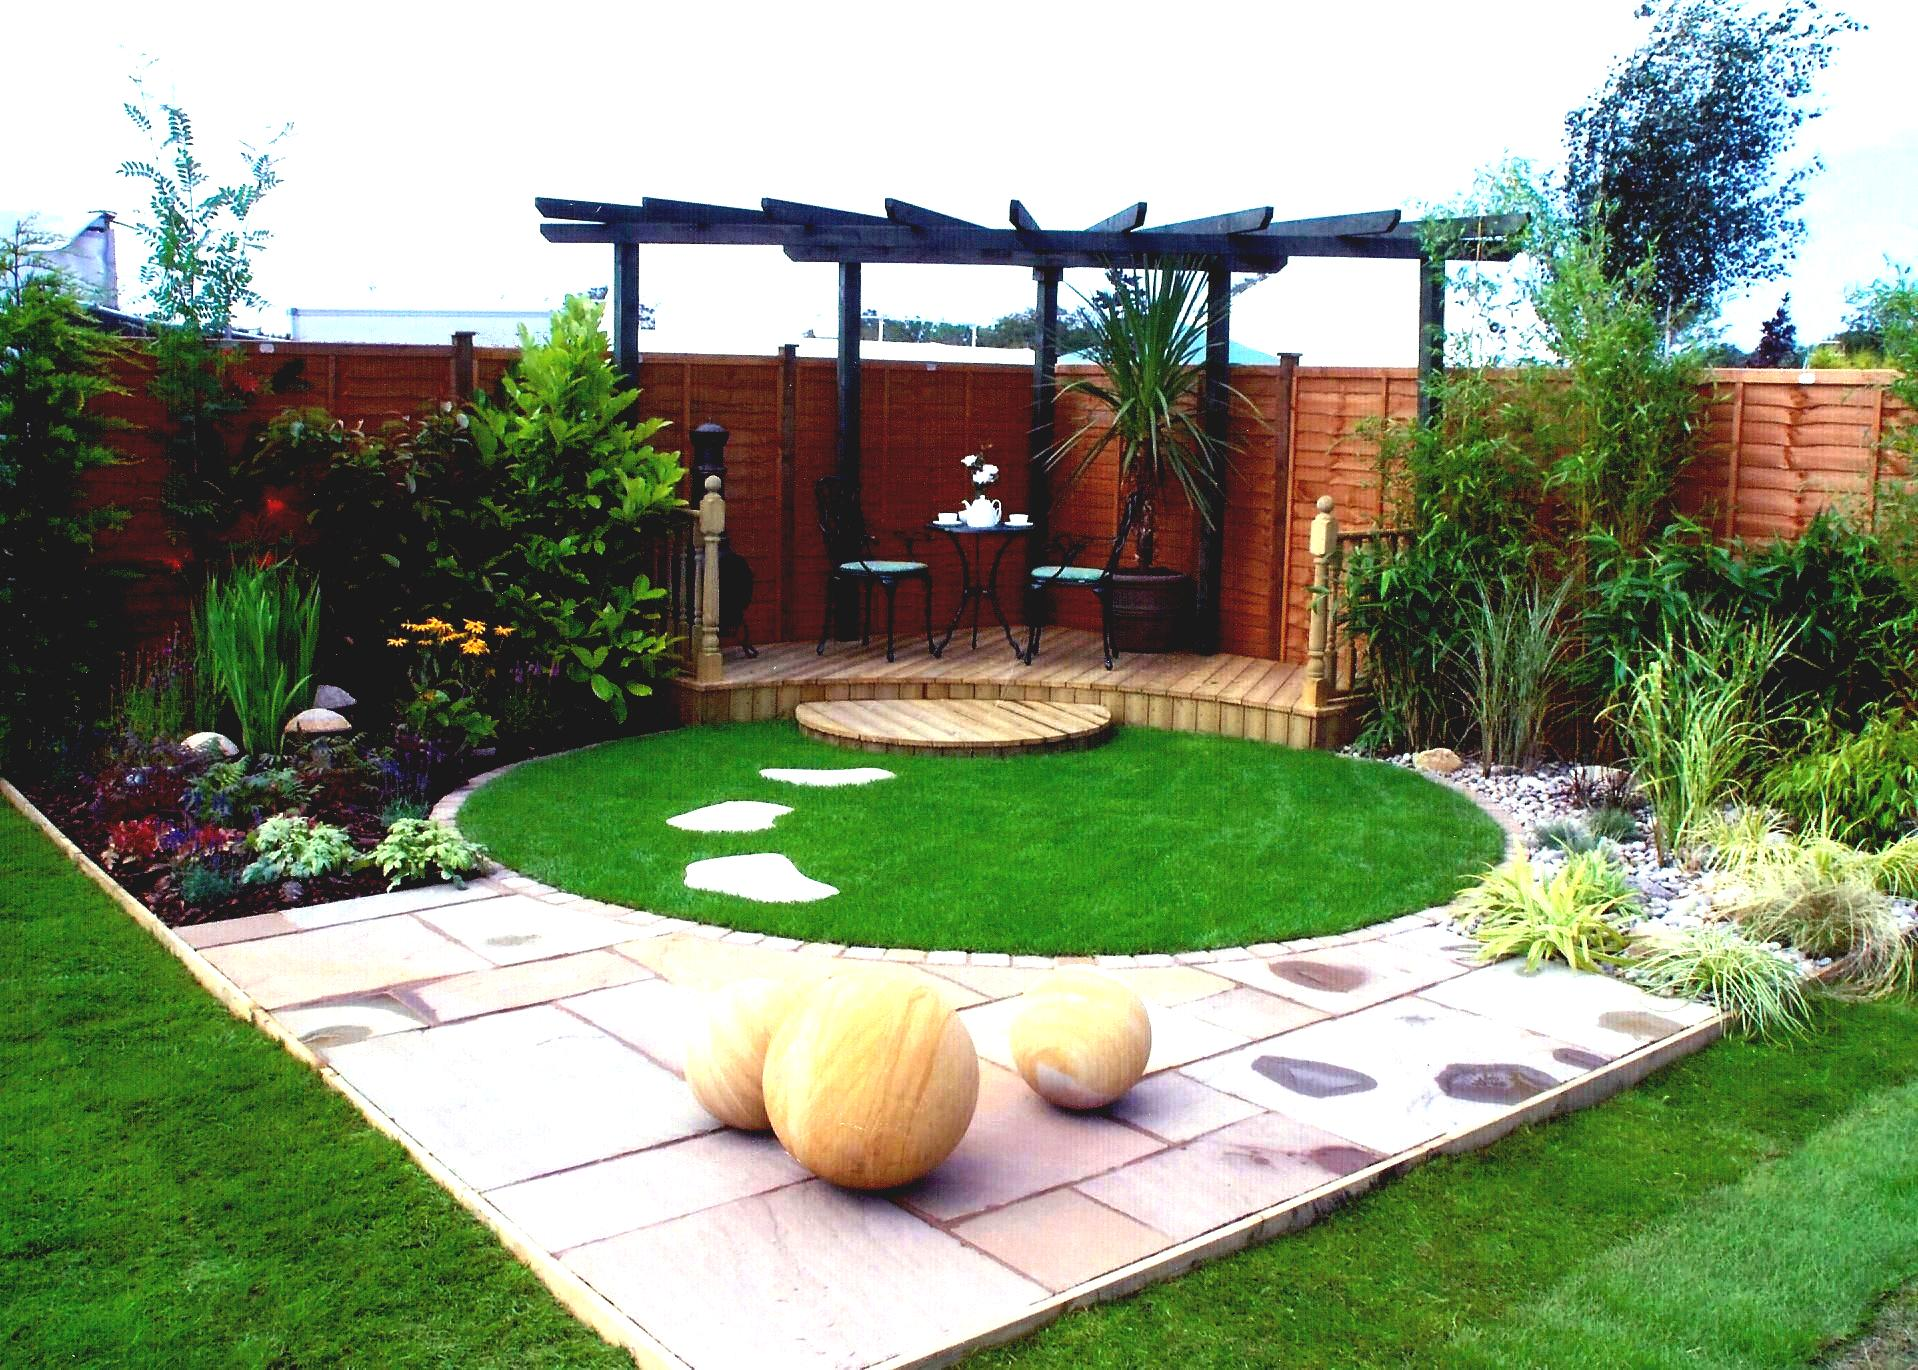 small garden ideas small garden google search best outdoor landscaping ideas images on  pinterest FXWWVNK